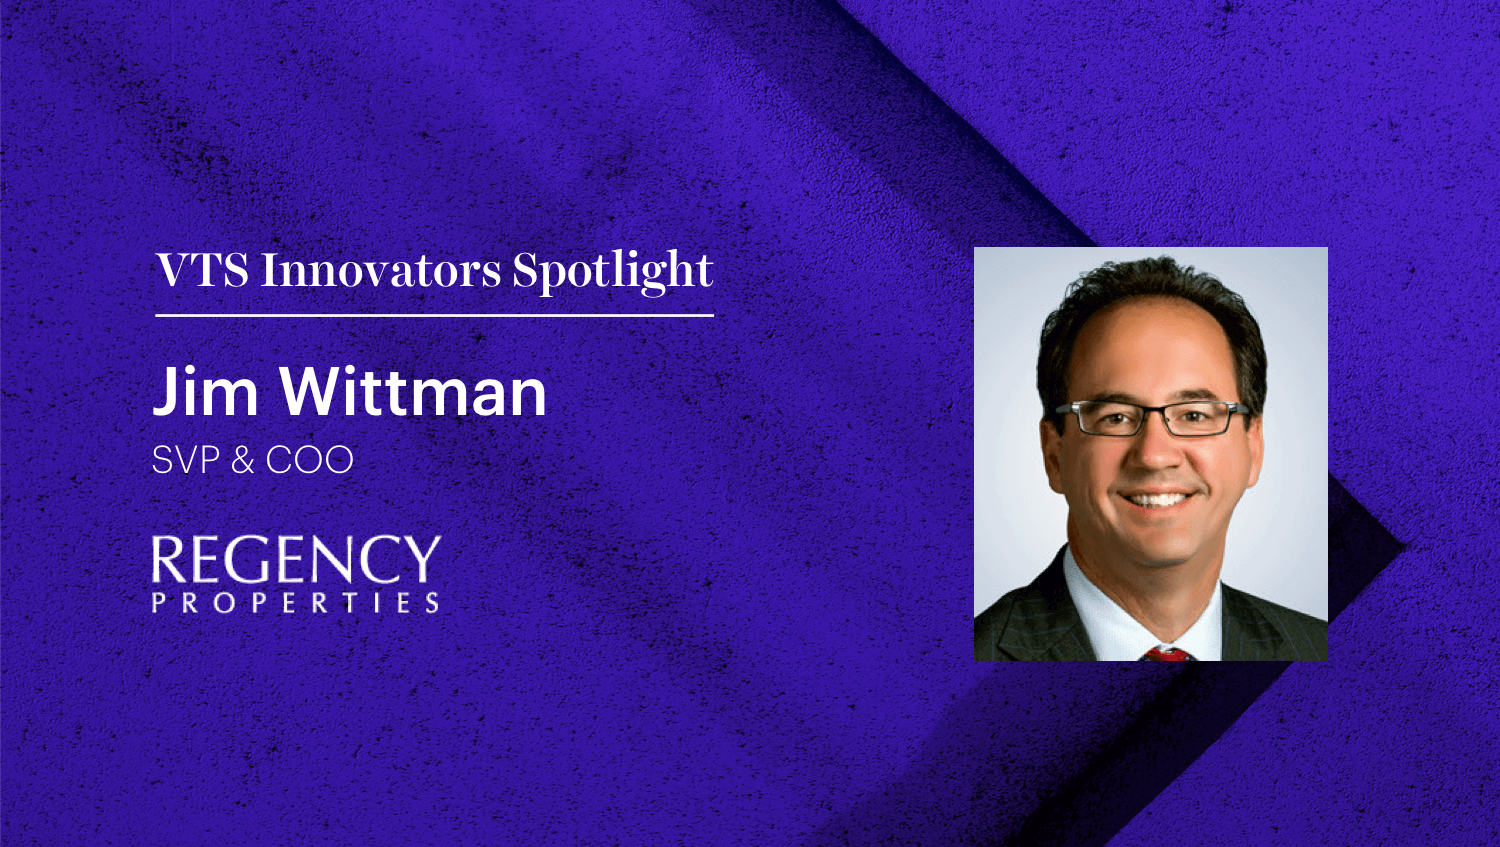 Regency Properties' Jim Wittman on Using Technology to Provide a Best-in-Class Local Retail Experience